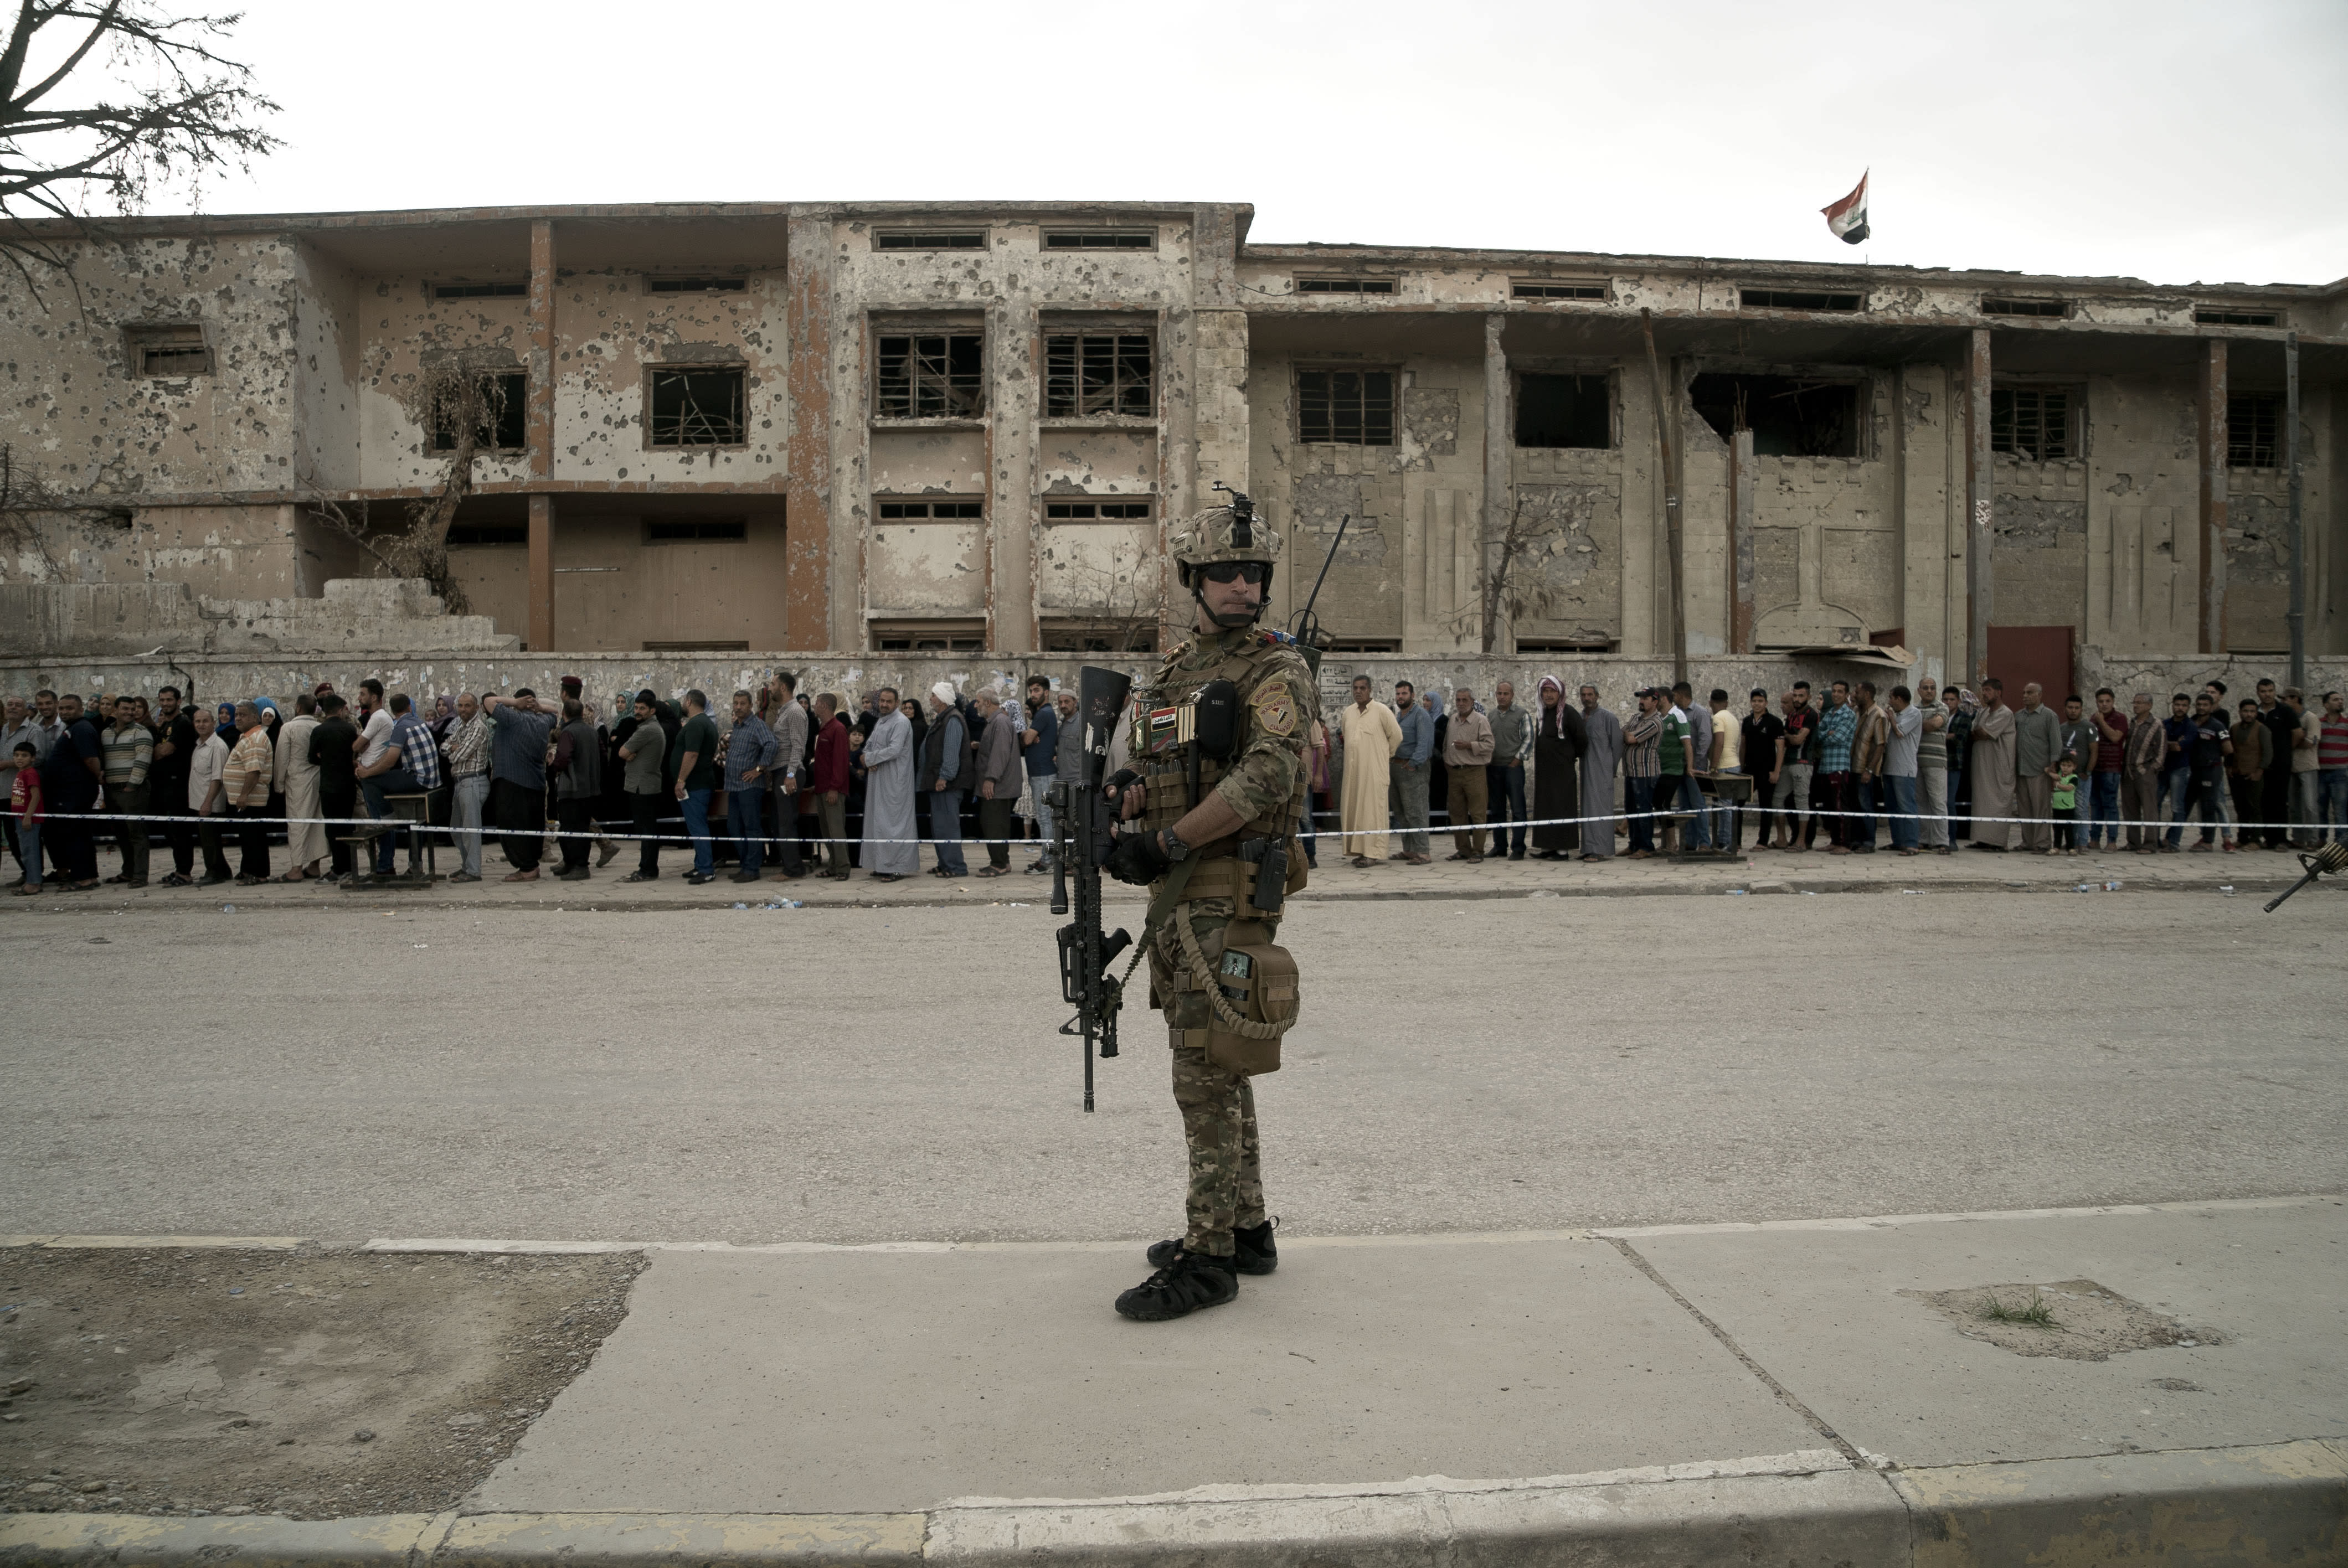 <p>Iraqis wait in a long line to cast their votes in the country's parliamentary elections at a polling site in a damaged building in west Mosul, Iraq, Saturday, May 12, 2018. This is the first parliamentary election since the militant group was ousted from the city. (Photo: Maya Alleruzzo/AP) </p>